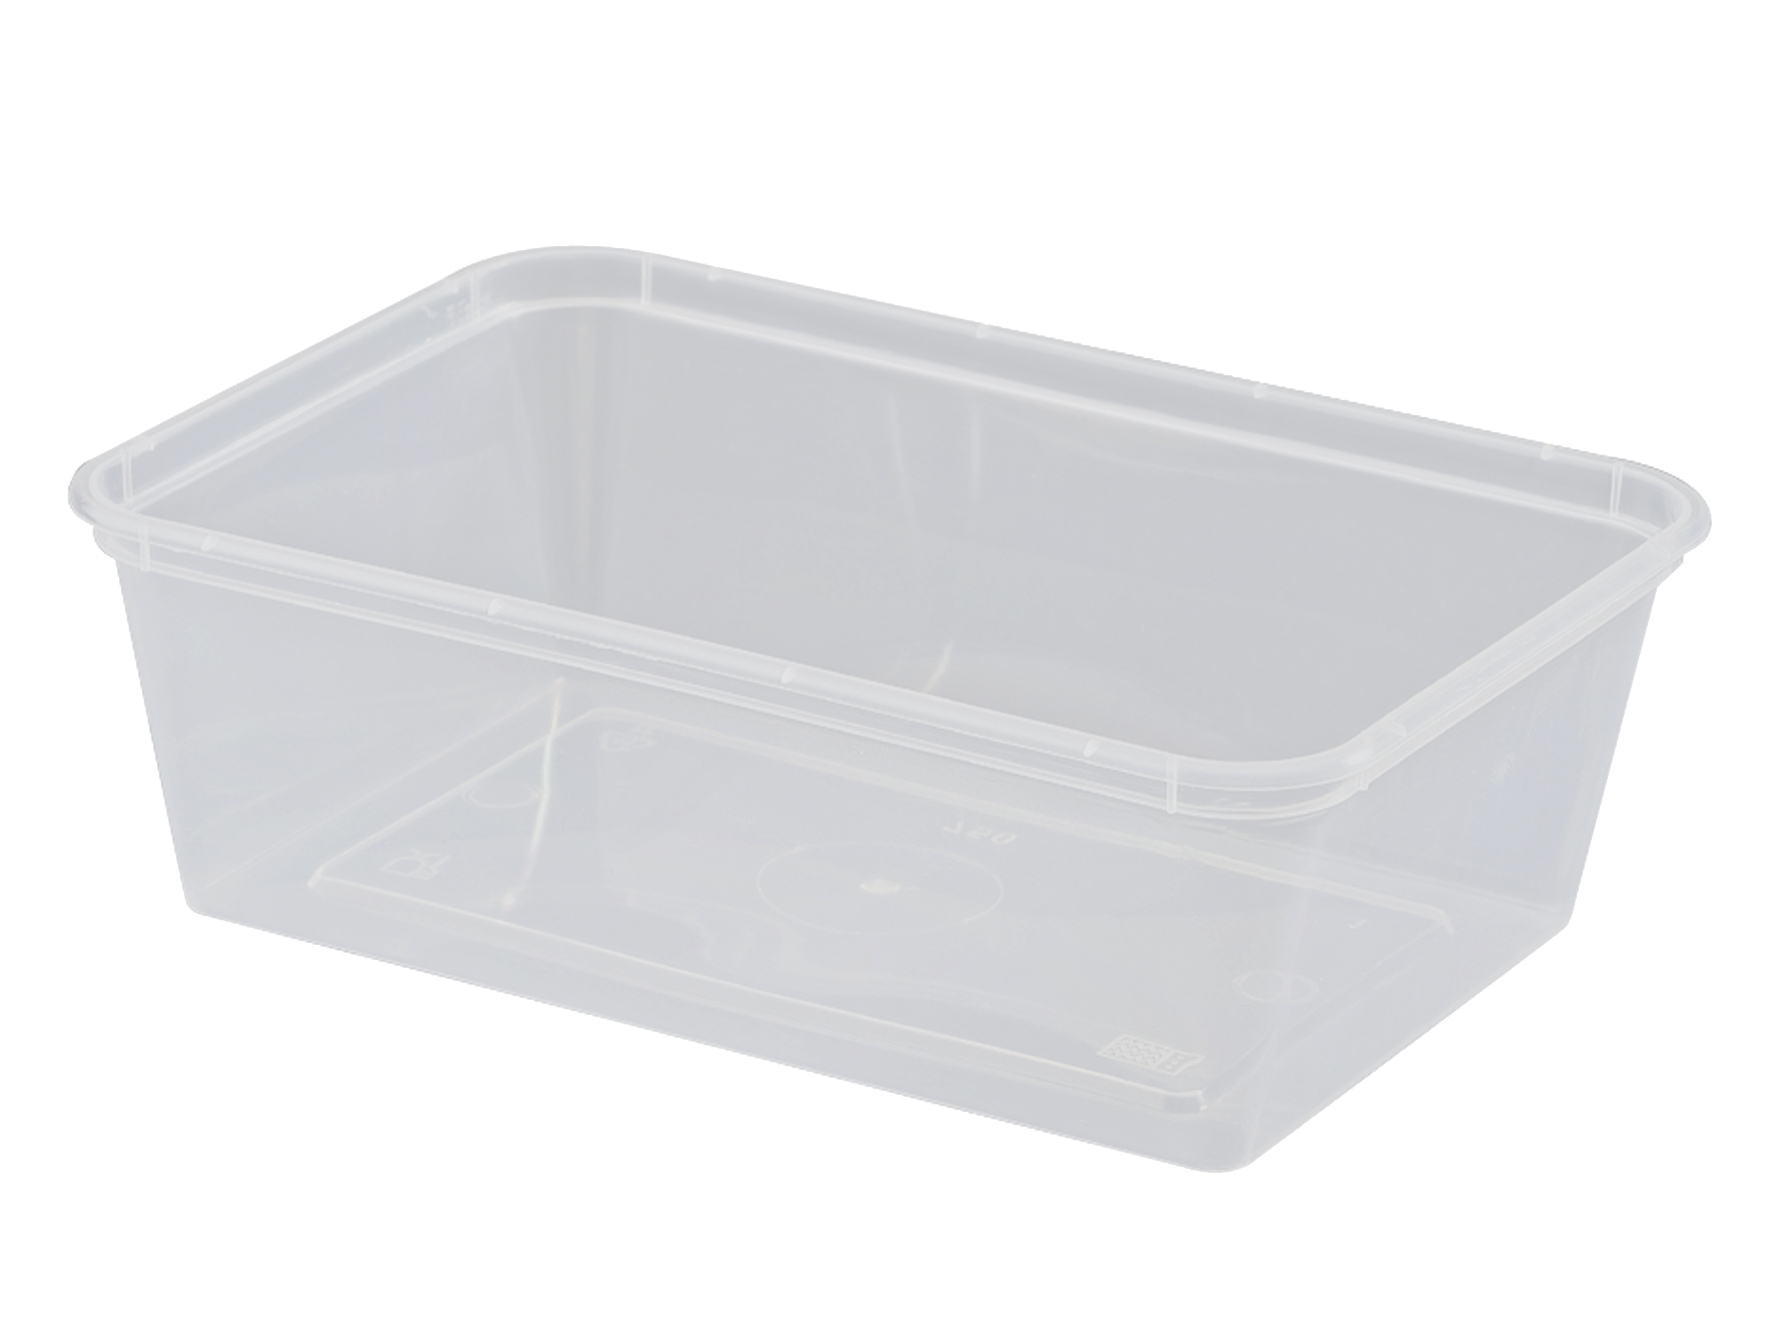 UP FREEZER GRADE RECTANGLE CONTAINER  750ML 50Slv